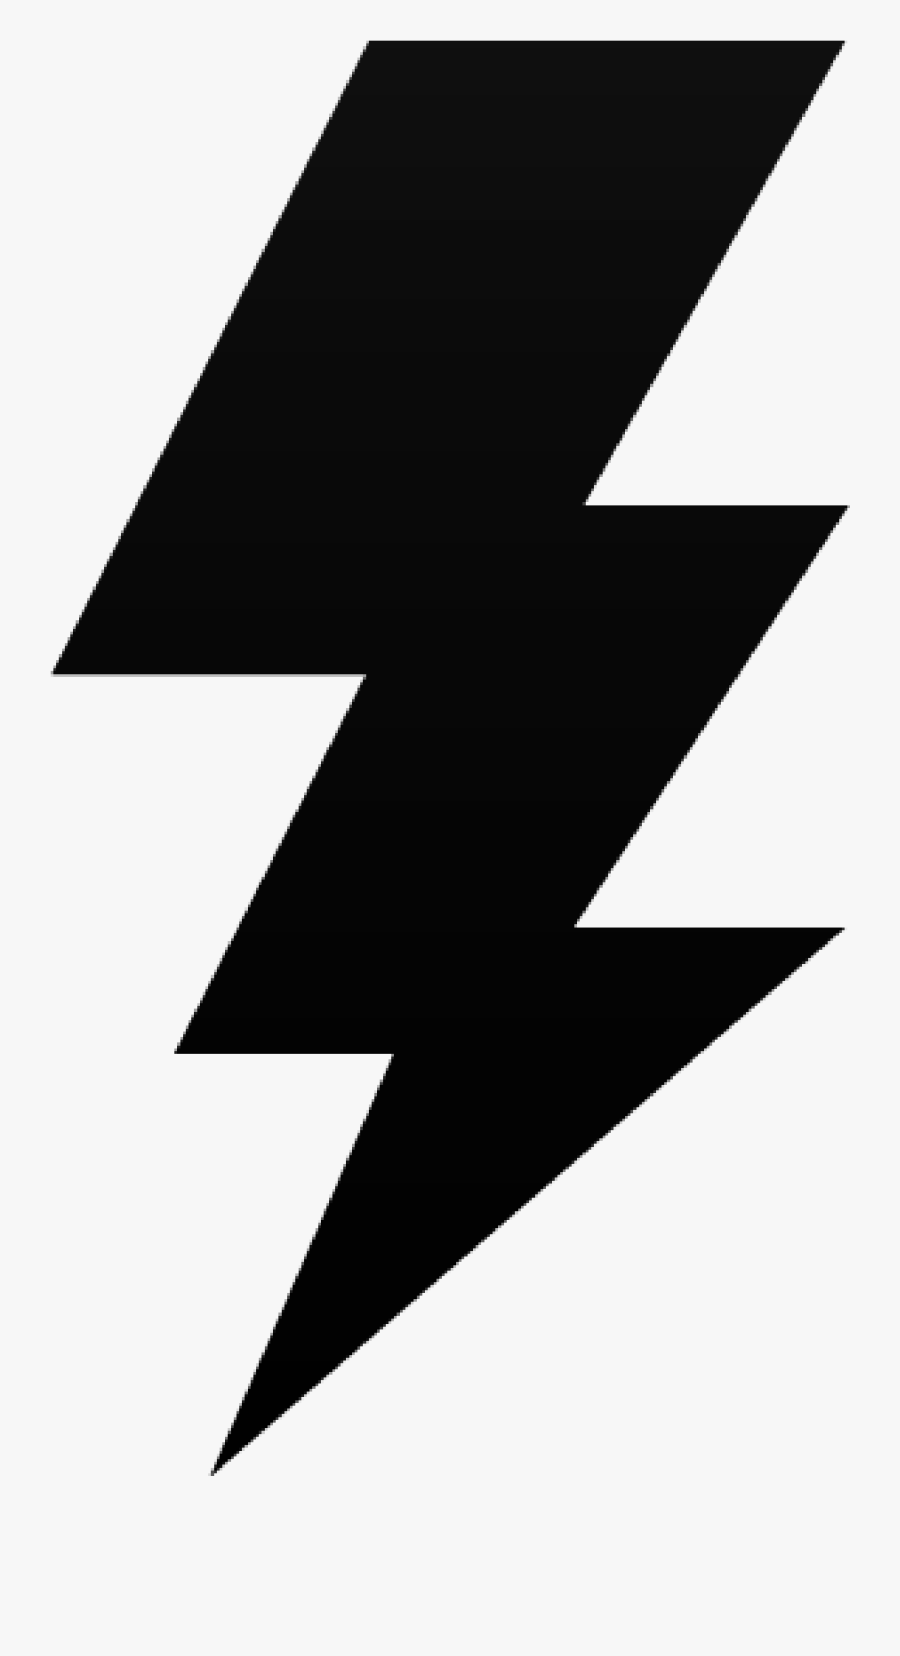 Transparent Groundbreaking Clipart Icon Lightning Bolt Png Free Transparent Clipart Clipartkey